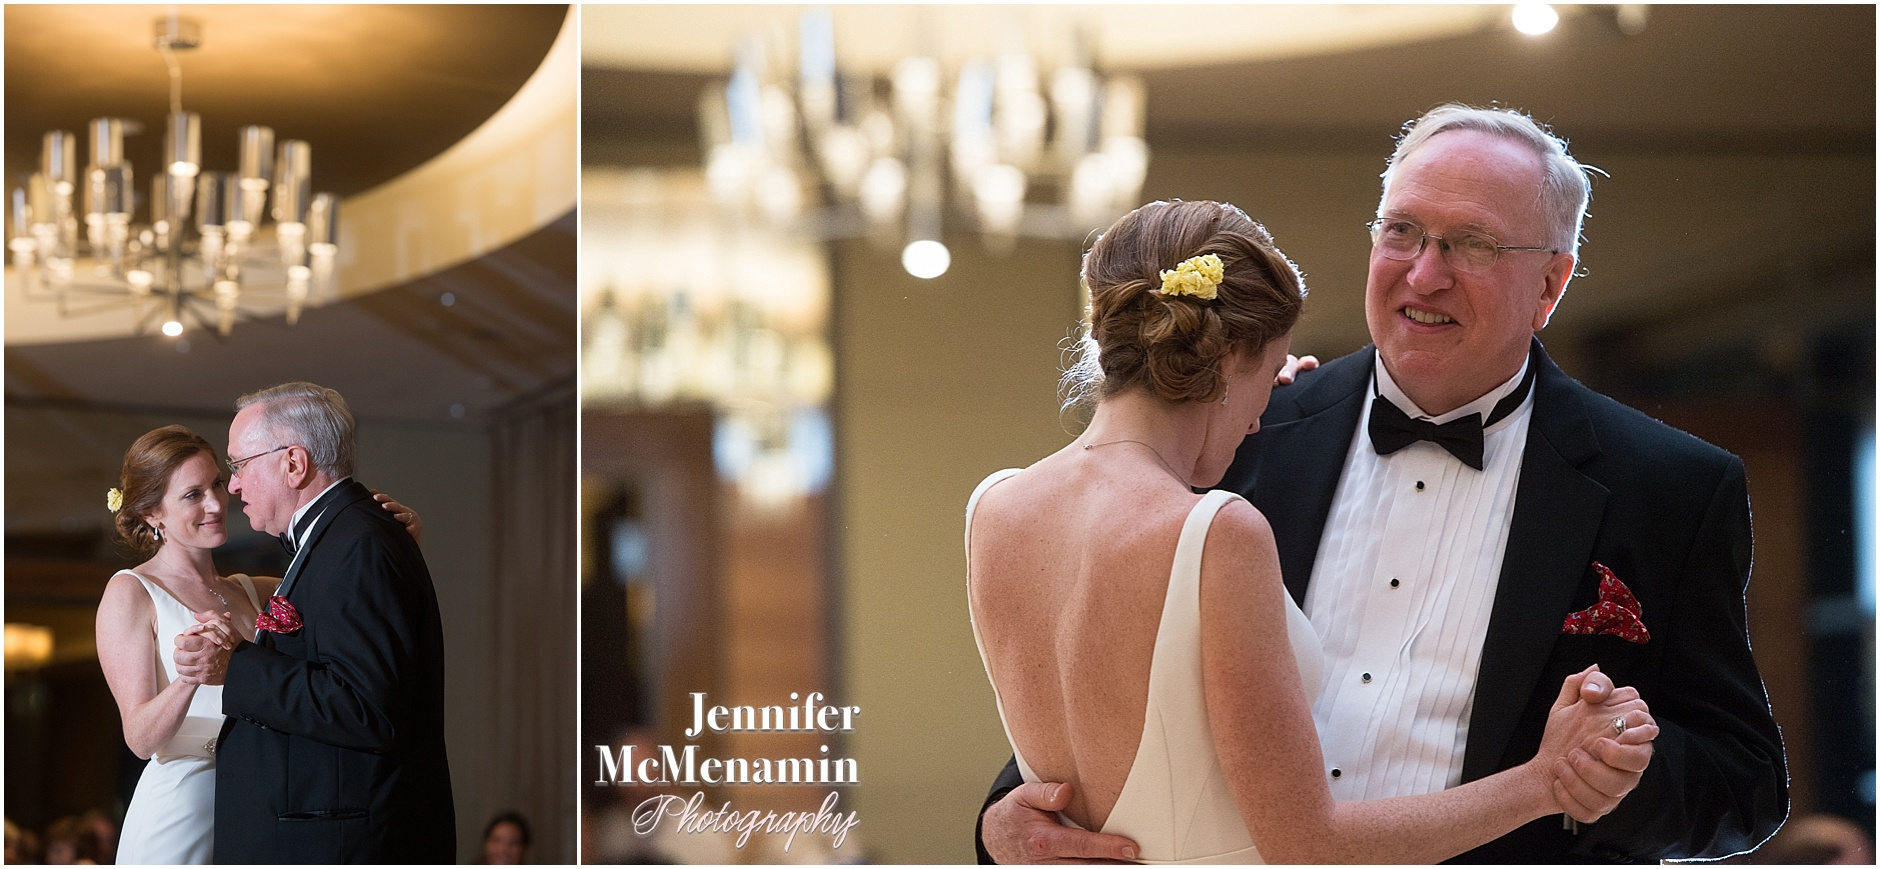 078-Four-Seasons-Baltimore-wedding-Jennifer-McMenamin-Photography